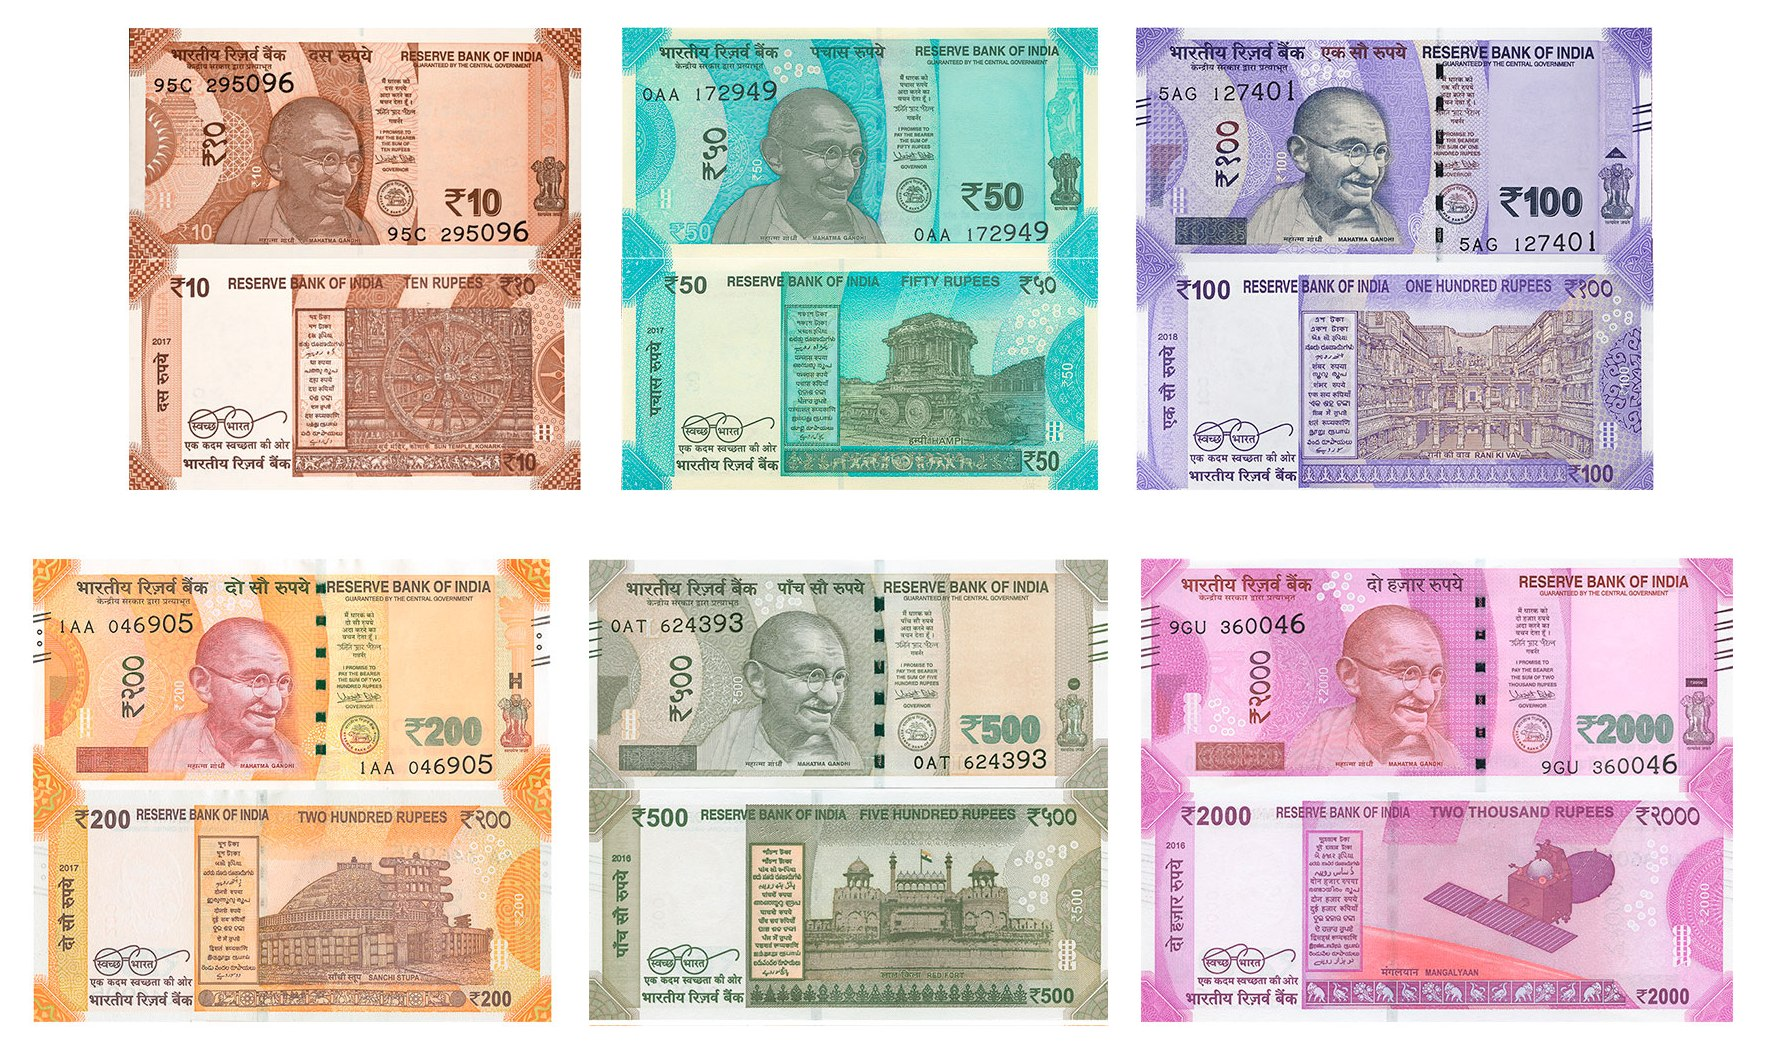 Pictures in Indian Currency